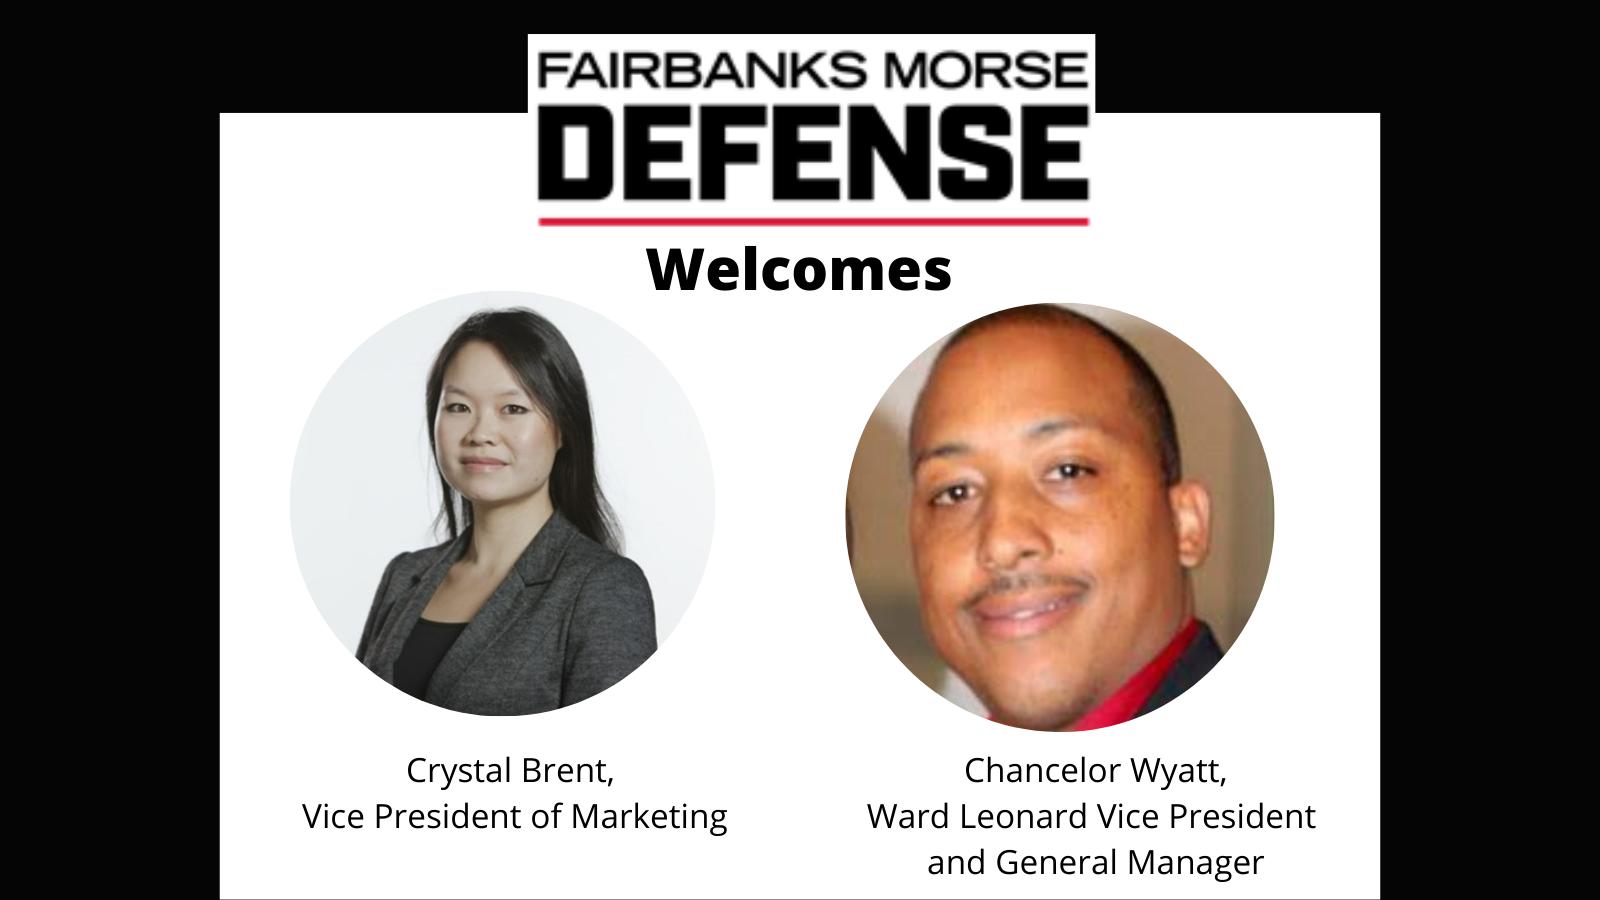 Fairbanks Morse Defense Expands Executive Management Team With Crystal Brent and Chancelor Wyatt